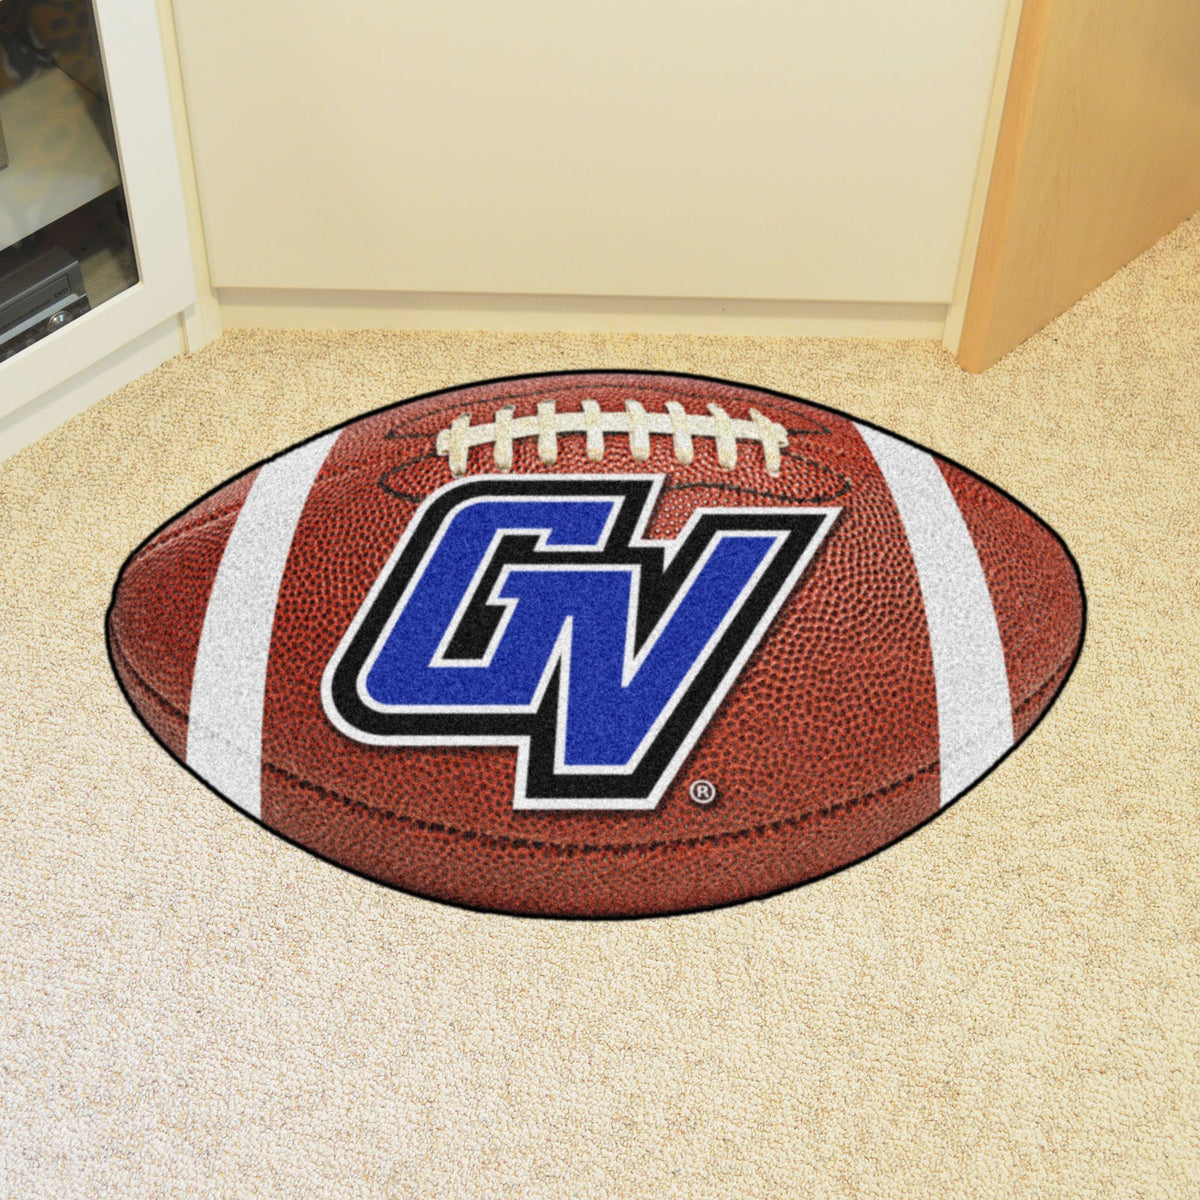 Collegiate - Football Mat: A - K Collegiate Mats, Rectangular Mats, Football Mat, Collegiate, Home Fan Mats Grand Valley State